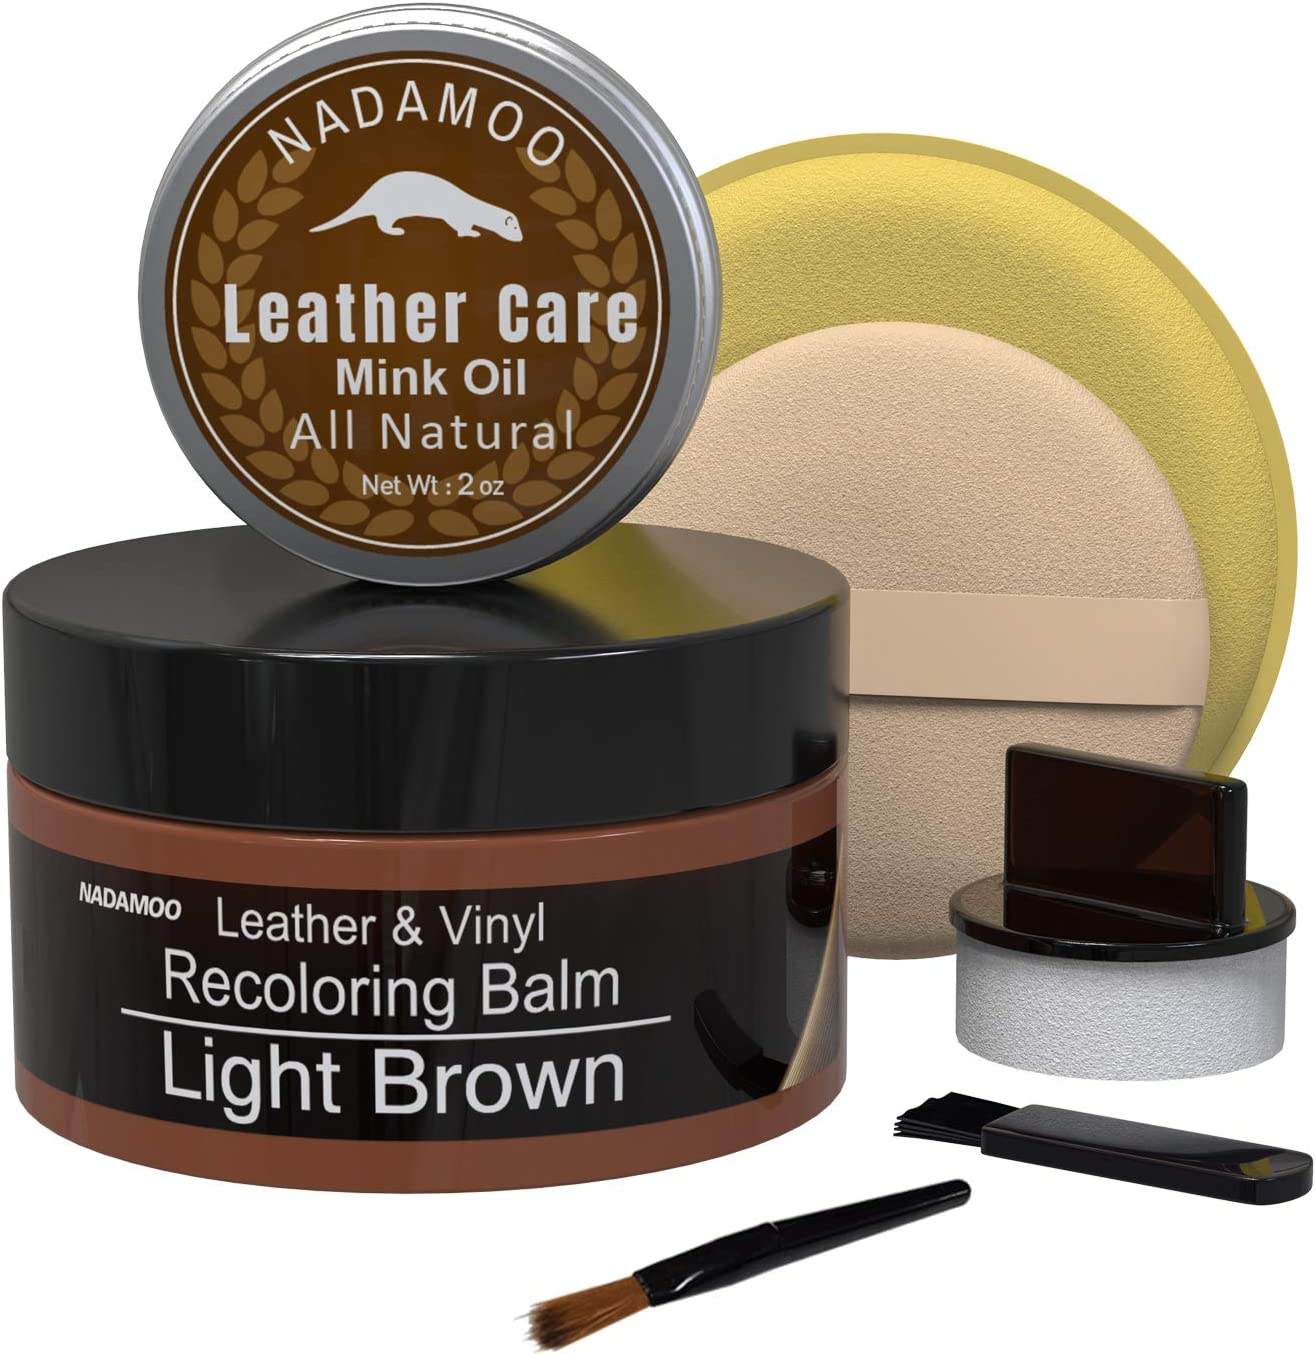 NADAMOO Light Brown Leather Recoloring Balm with Mink Oil Leather Conditioner, Leather Repair Kits for Couches, Restoration Cream Scratch Repair Leather Dye For Vinyl Furniture Car Seat, Sofa, Shoes